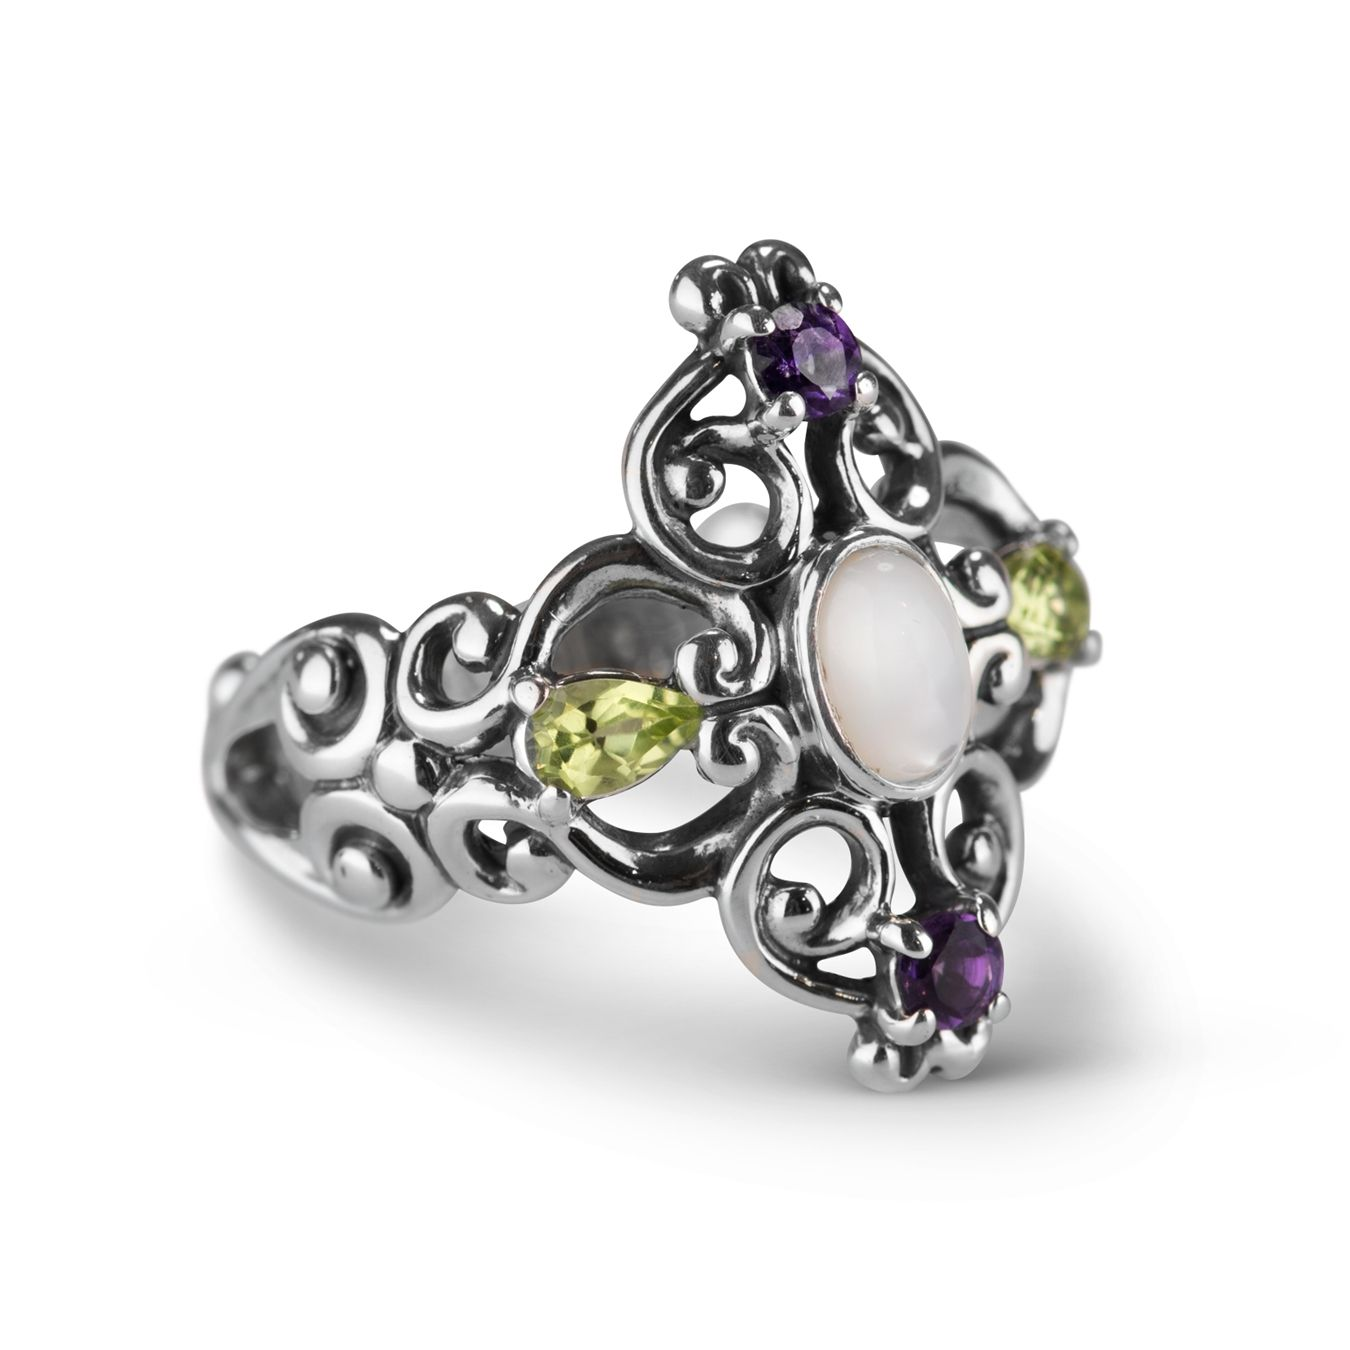 • Sterling silver bold ring• Amethyst, peridot and white mother of pearl gemstones• Measures approximately 1 wide x 1 long• Designed and crafted in America with gemstones from around the worldExquisite in color and graceful in its filigree design this multi gemstone flower ring has a charm all its own.  Faceted gemstones of amethyst and peridot are prong set into the sterling silver filigree design and a white mother of pearl glimmers at its center.  A ring with striking color that brightens…